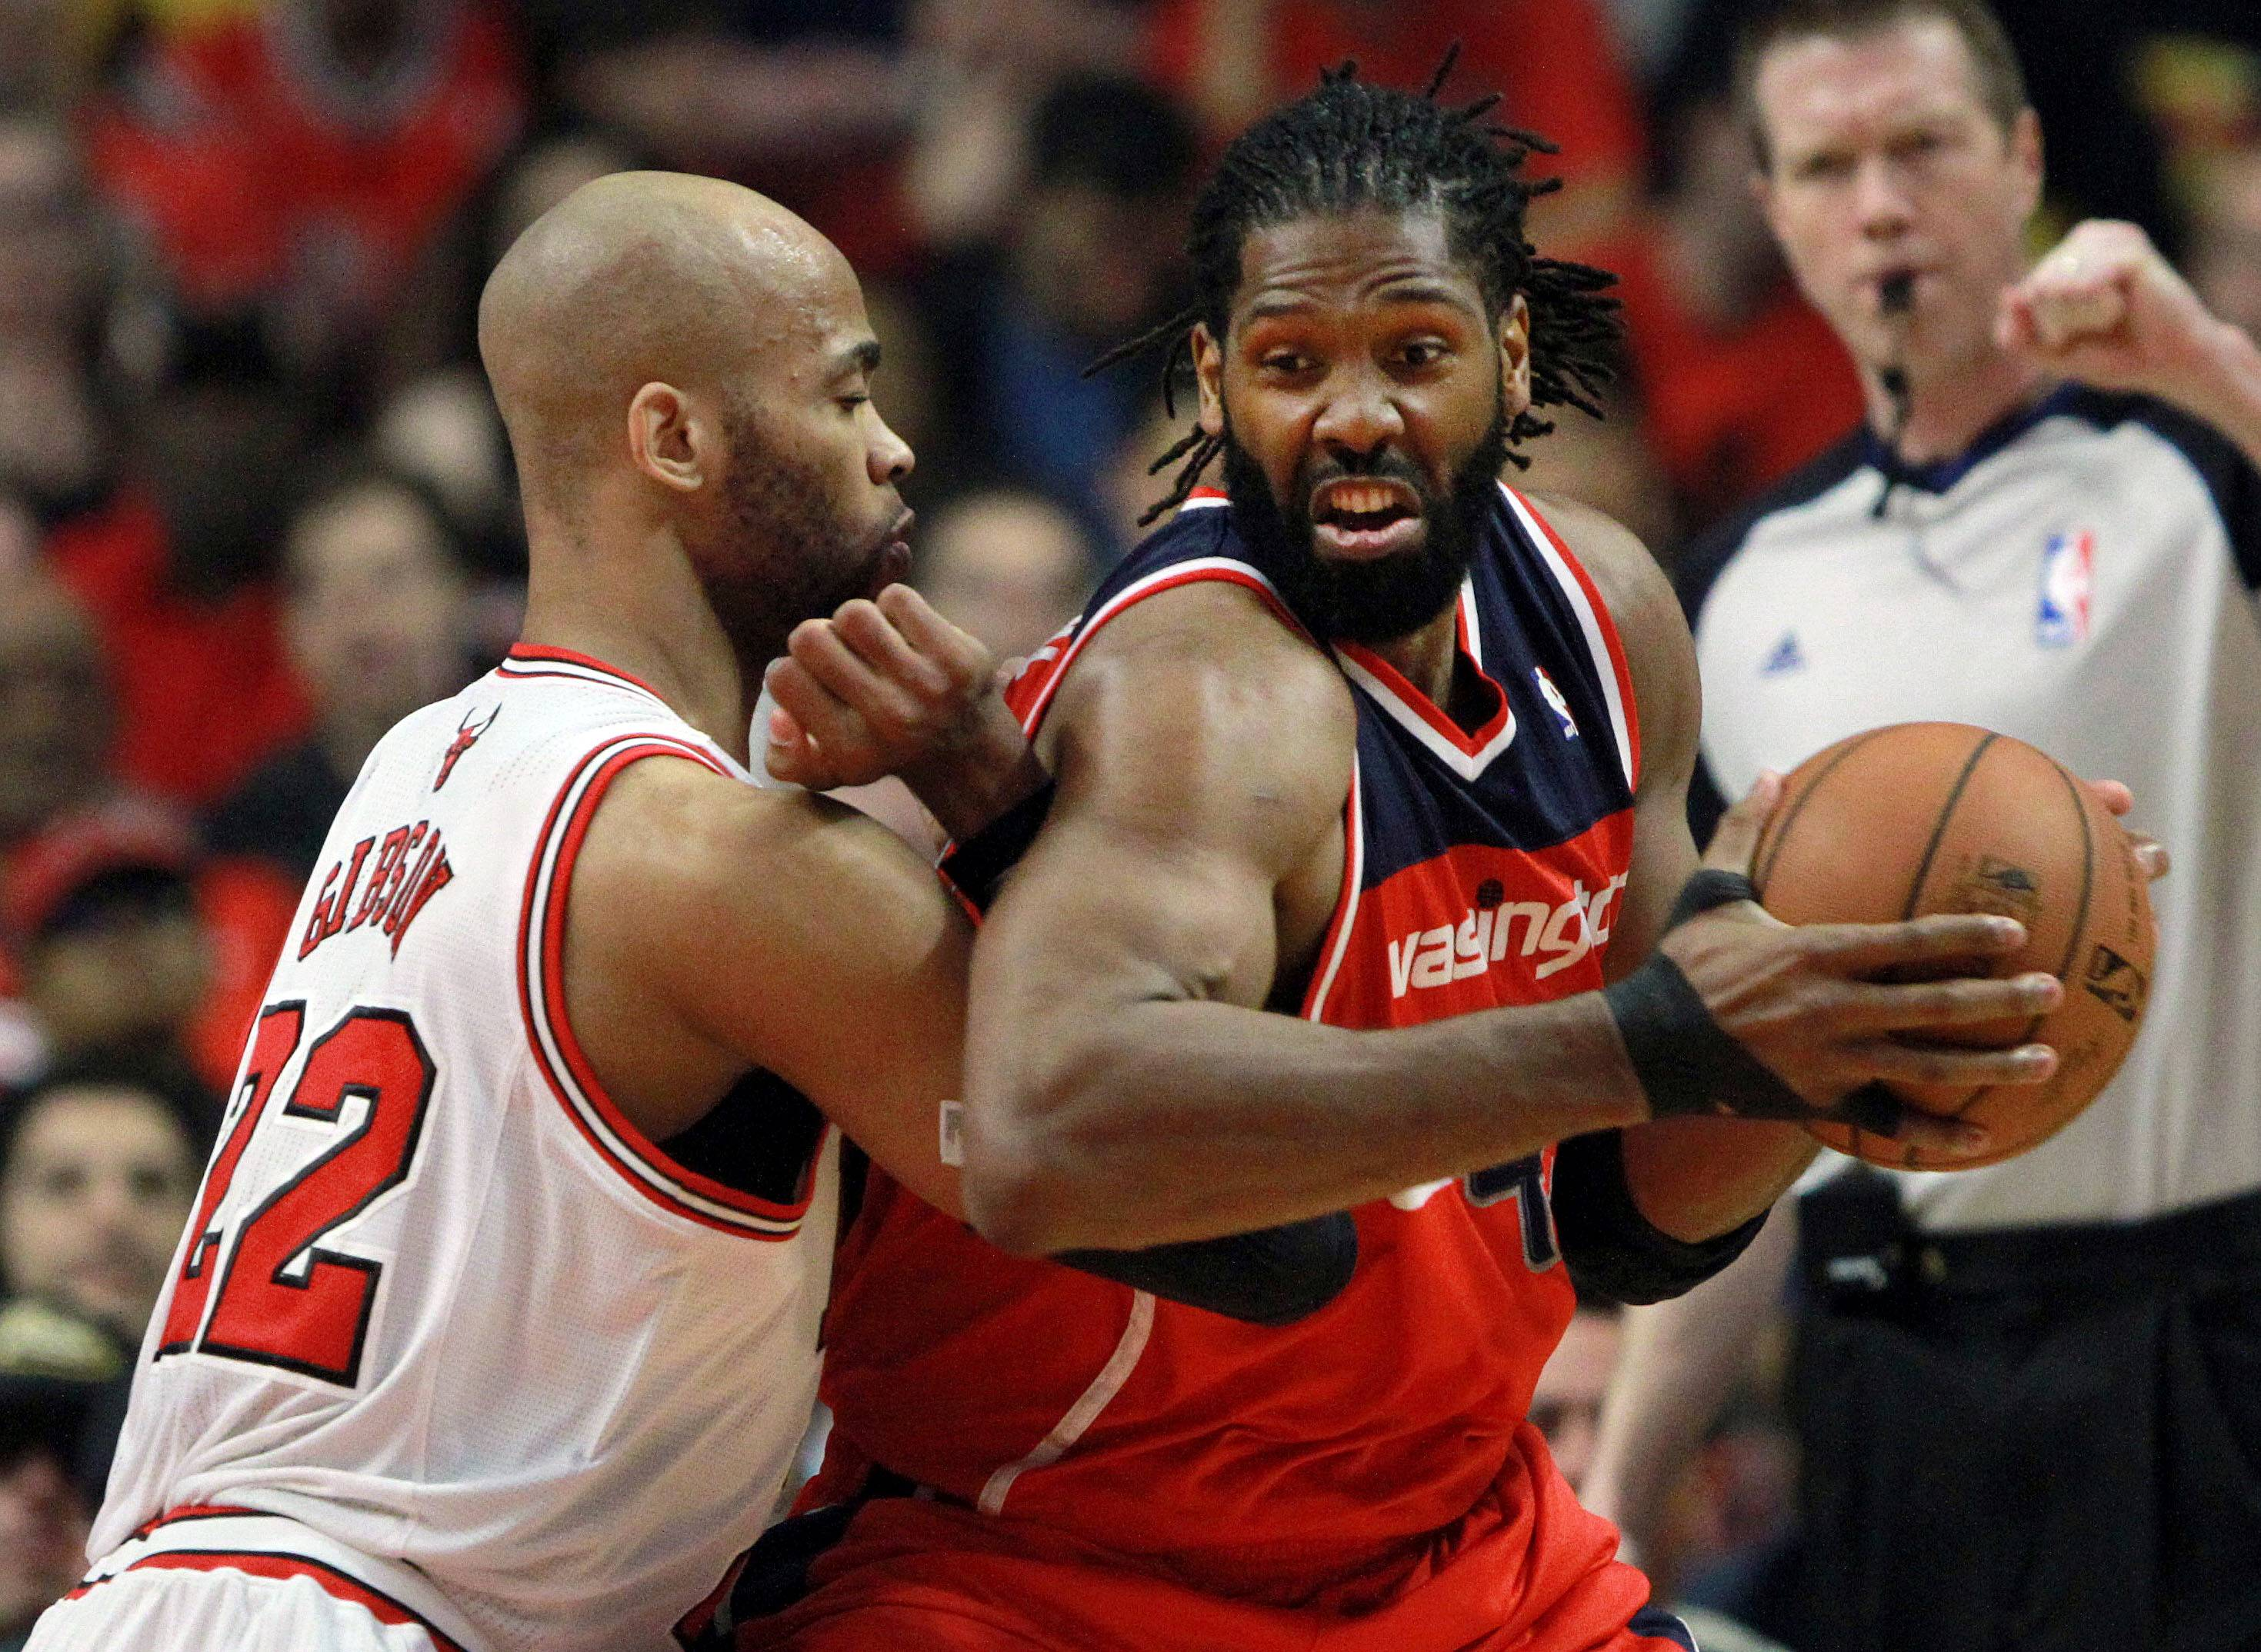 Washington Wizards forward Nene Hilario drives on Chicago Bulls Forward Taj Gibson.